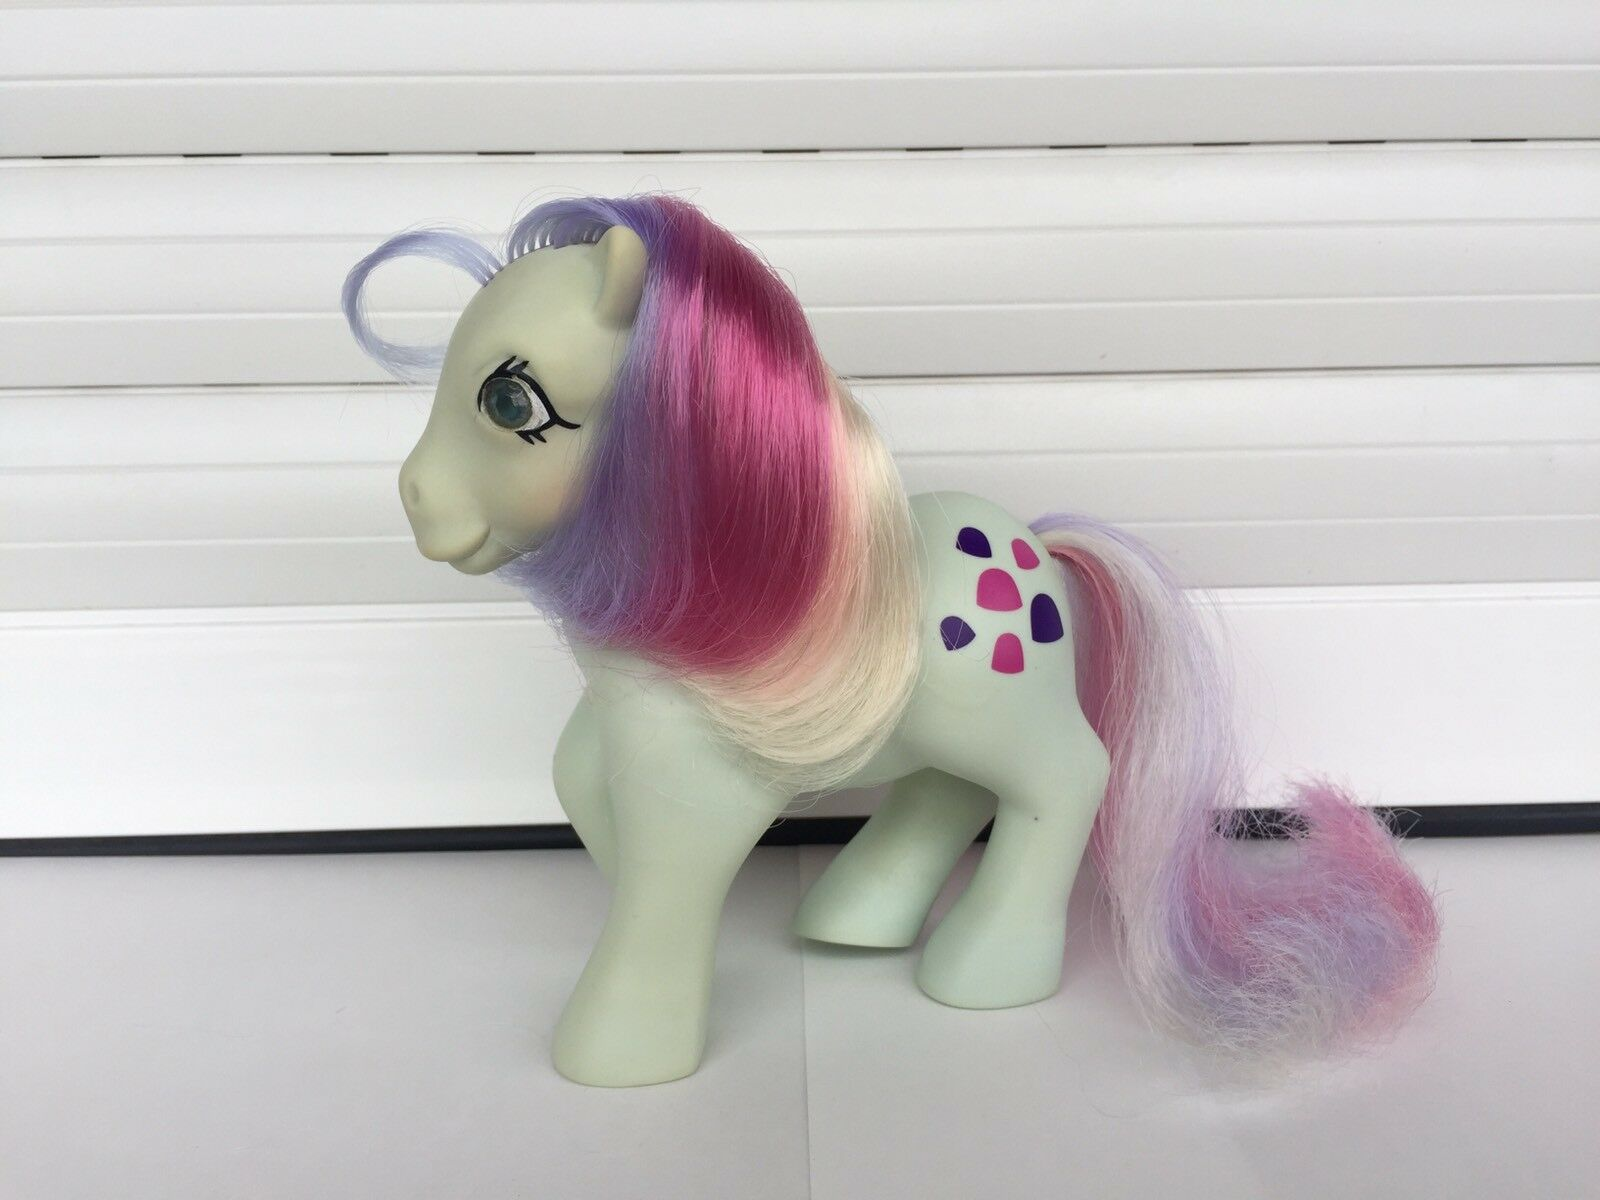 MI PEQUEÑO PONY GOLOSO - MY LITTLE PONY SWEET STUFF - G1 PONY MADE IN SPAIN